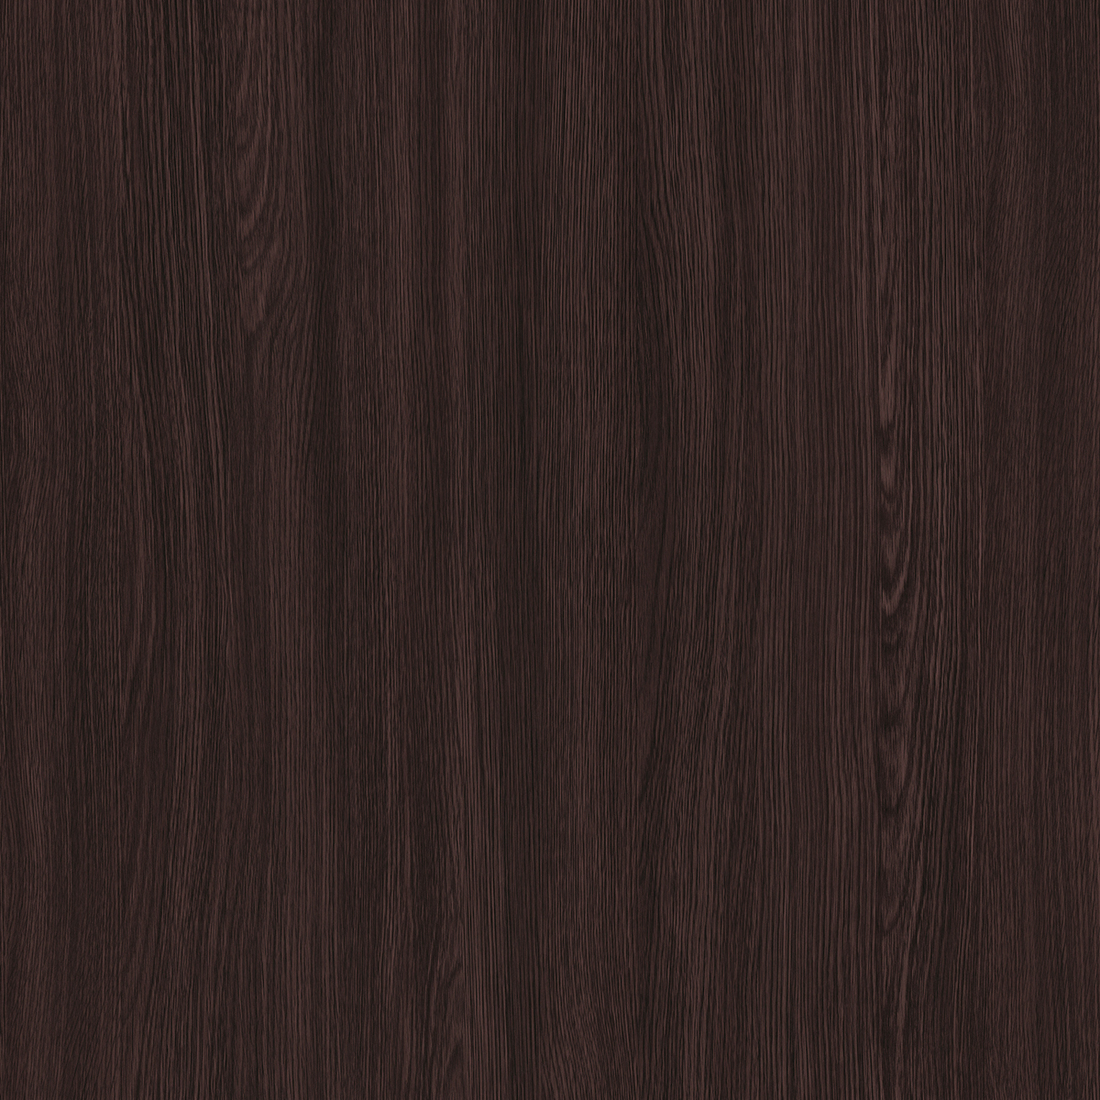 Louisiana Wenge